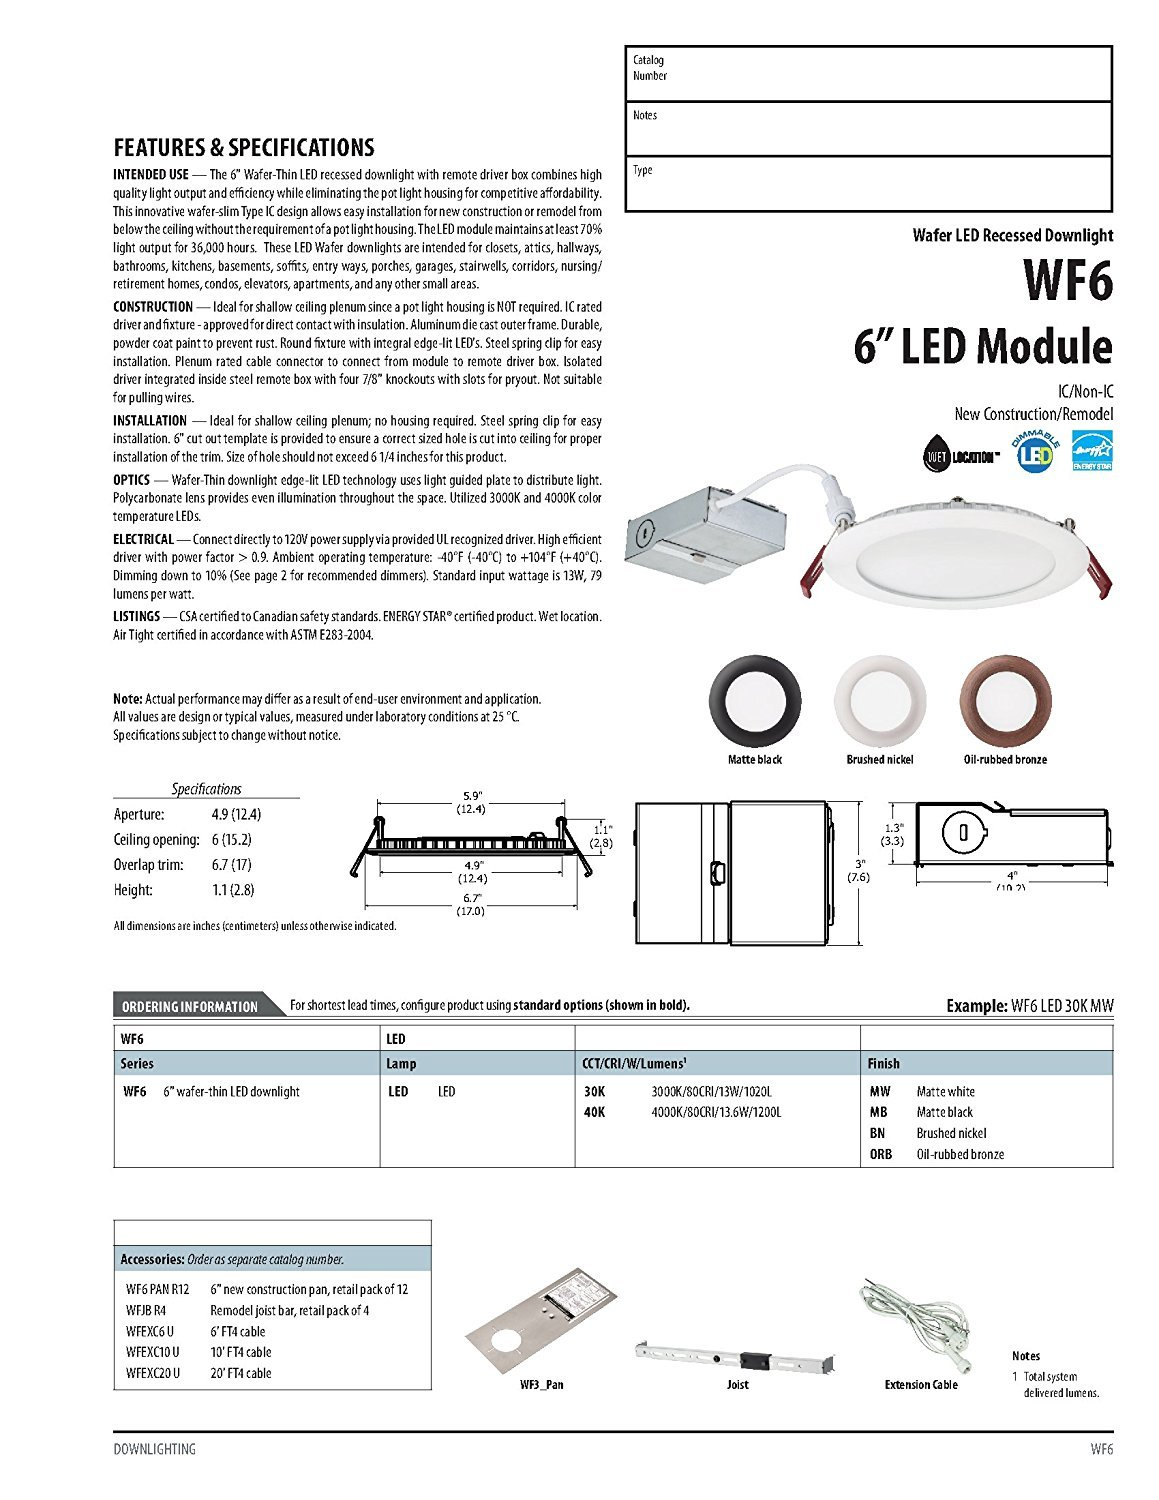 Lithonia Lighting Wf6 Ll Led 50k Mw M6 12w Ultra Thin 6 Inch Round 0 10v Dimming Downlight Wiring Diagram Dimmable Recessed Ceiling Light 5000k Daylight In White Day